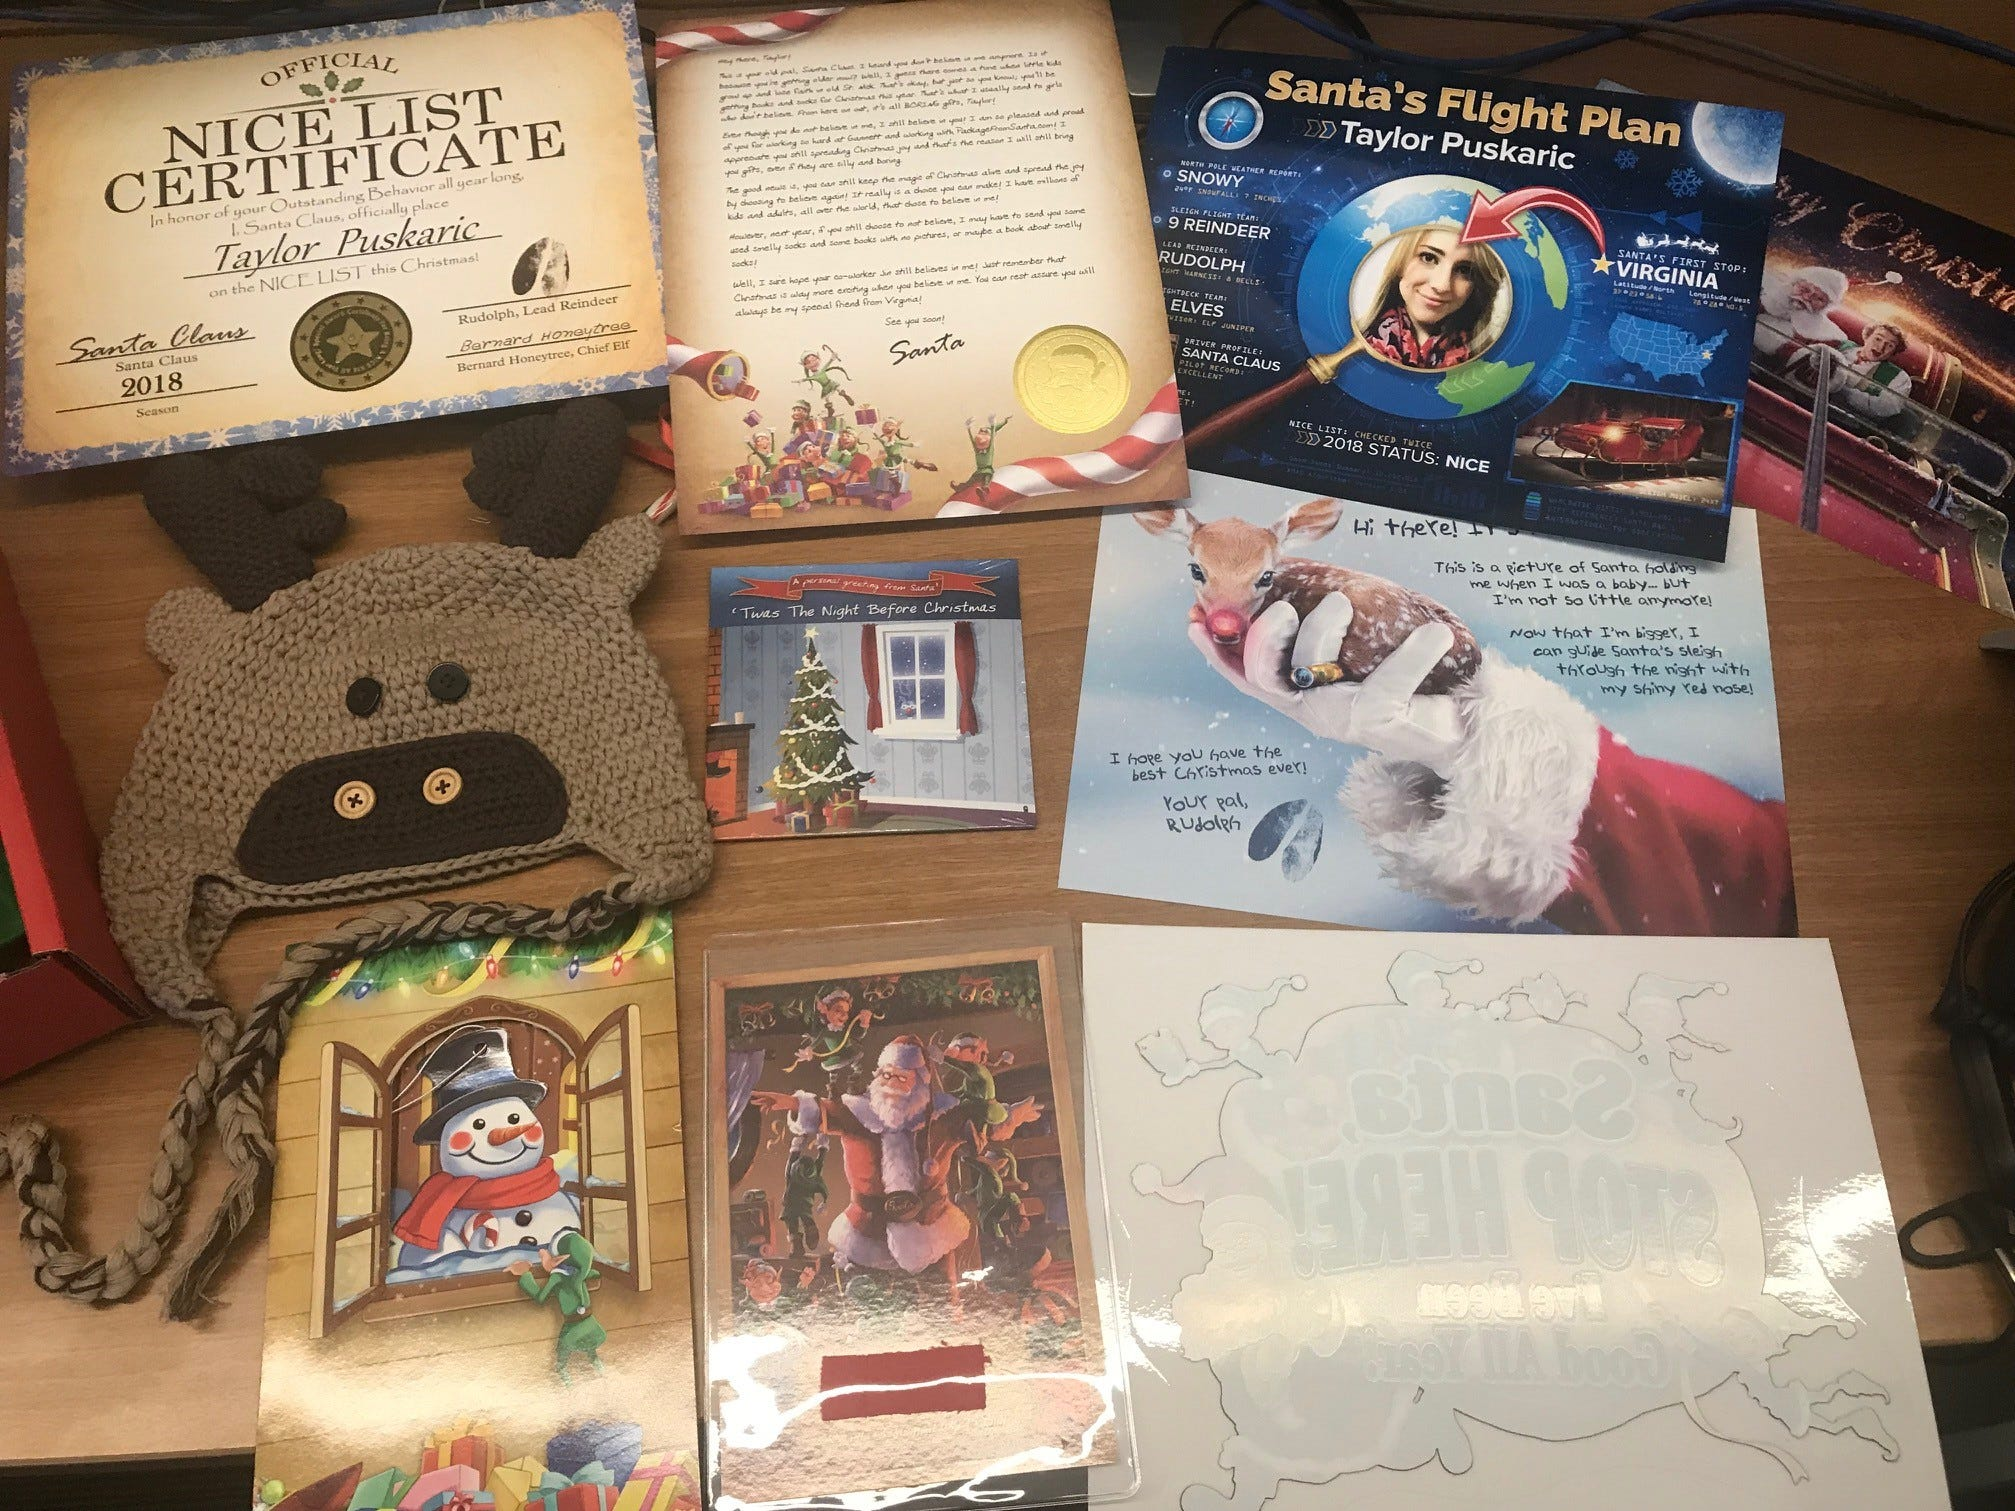 Closeup of the Platinum Package items. Includes nice list certificate, letter from Santa, flight plan, Merry Christmas picture, reindeer hat, video from Santa, reindeer picture, Christmas card, clipping of Santa's suit, and window decal.